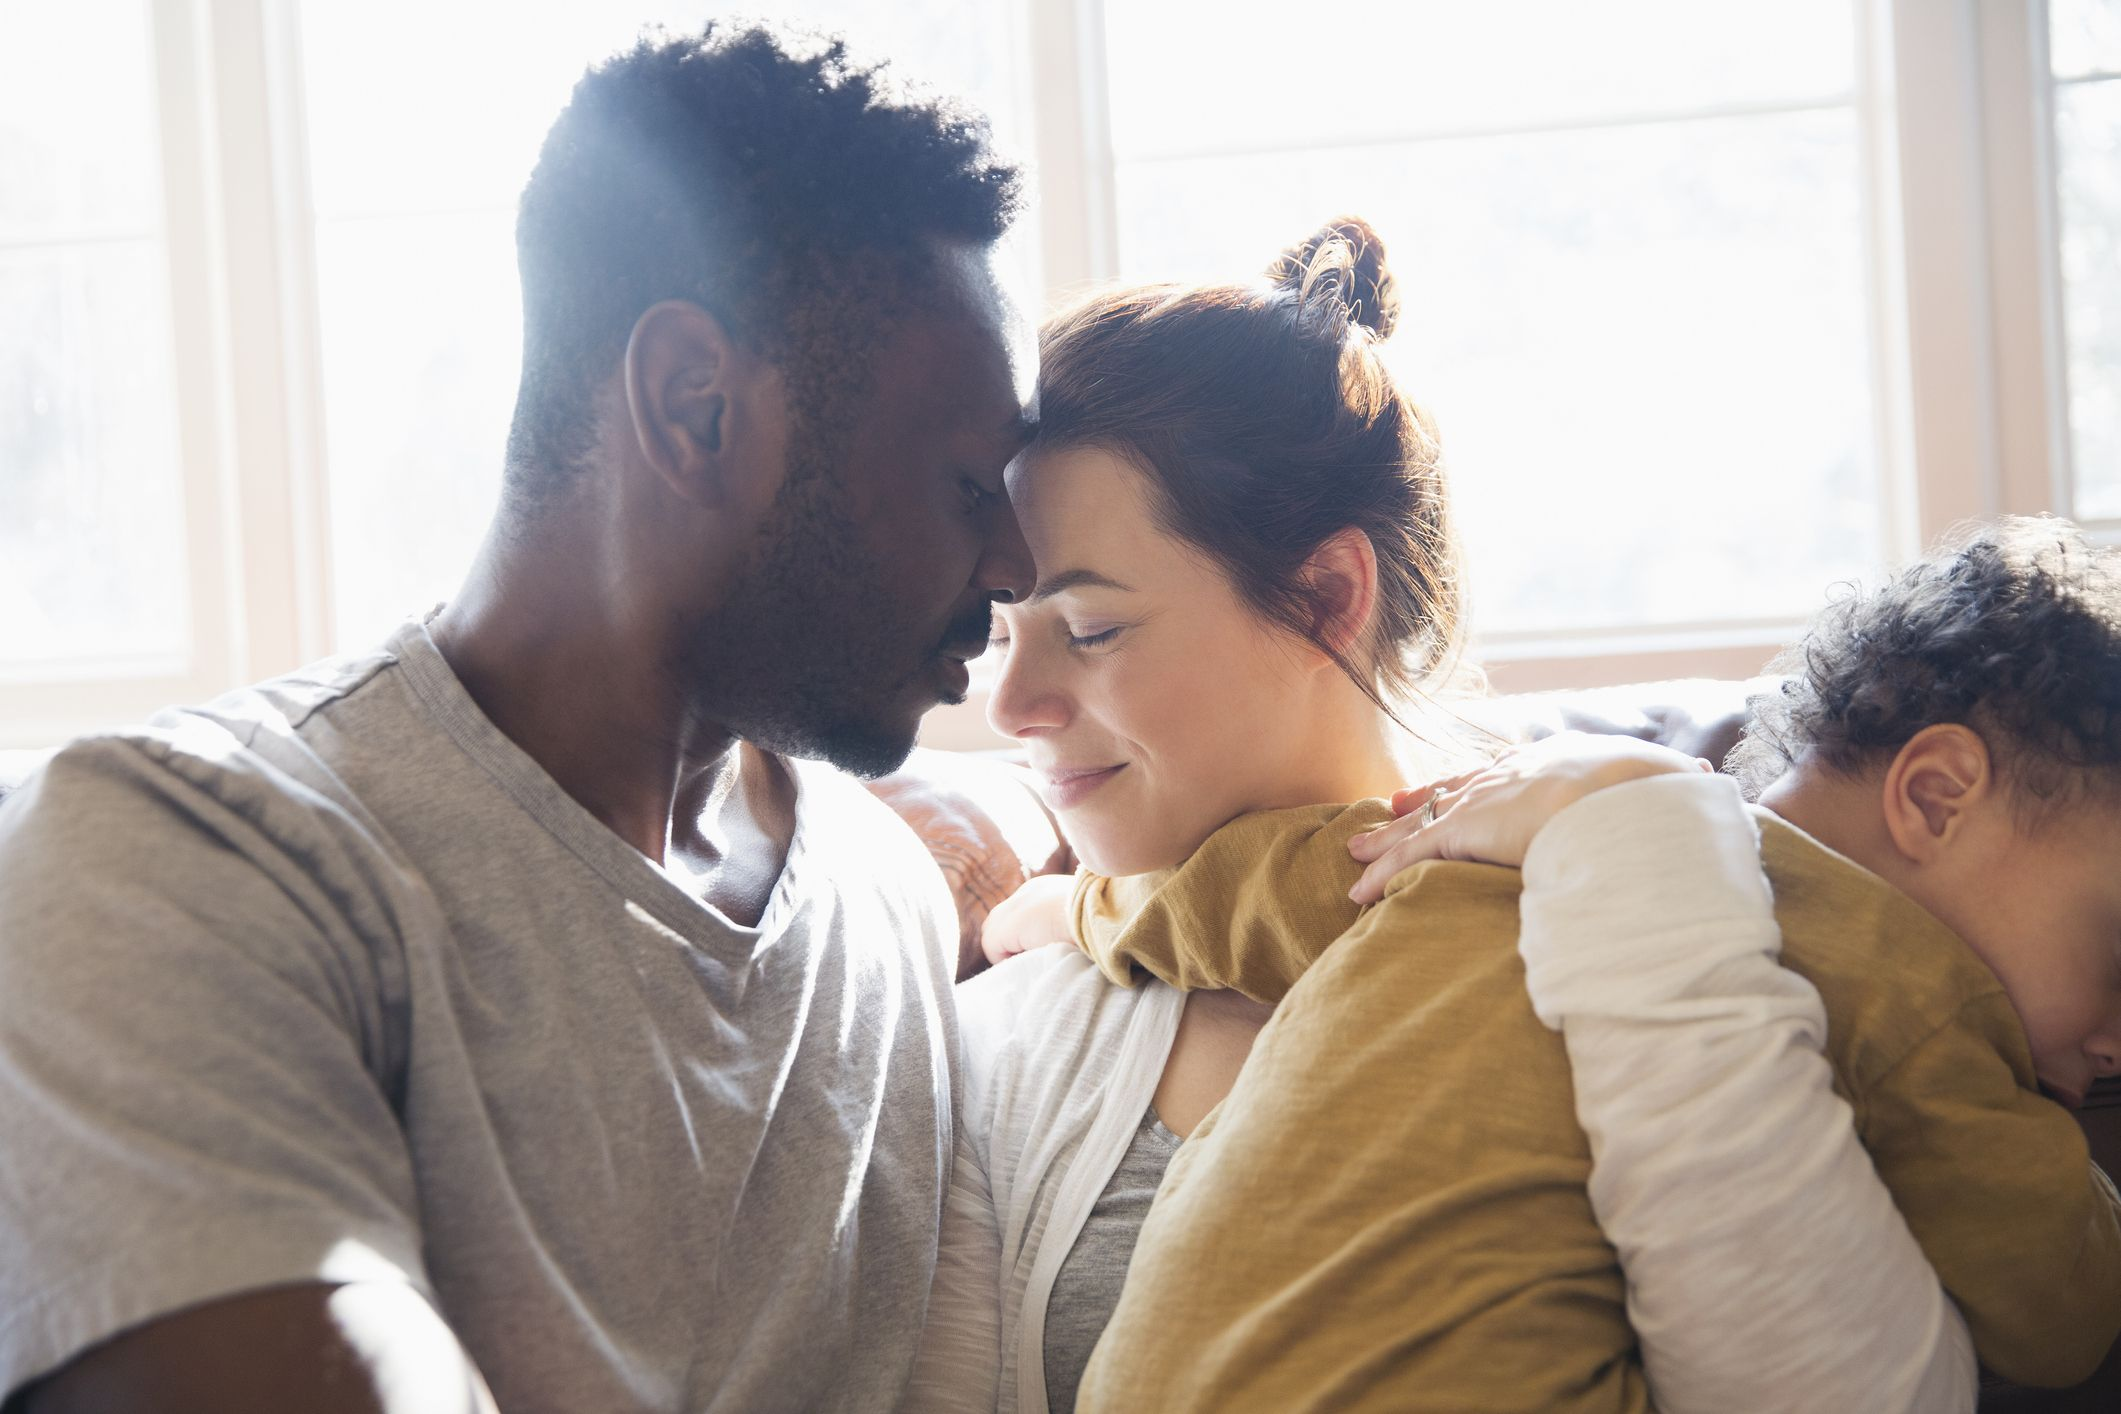 14 million people have taken this personality test that shows if you're in the best relationship